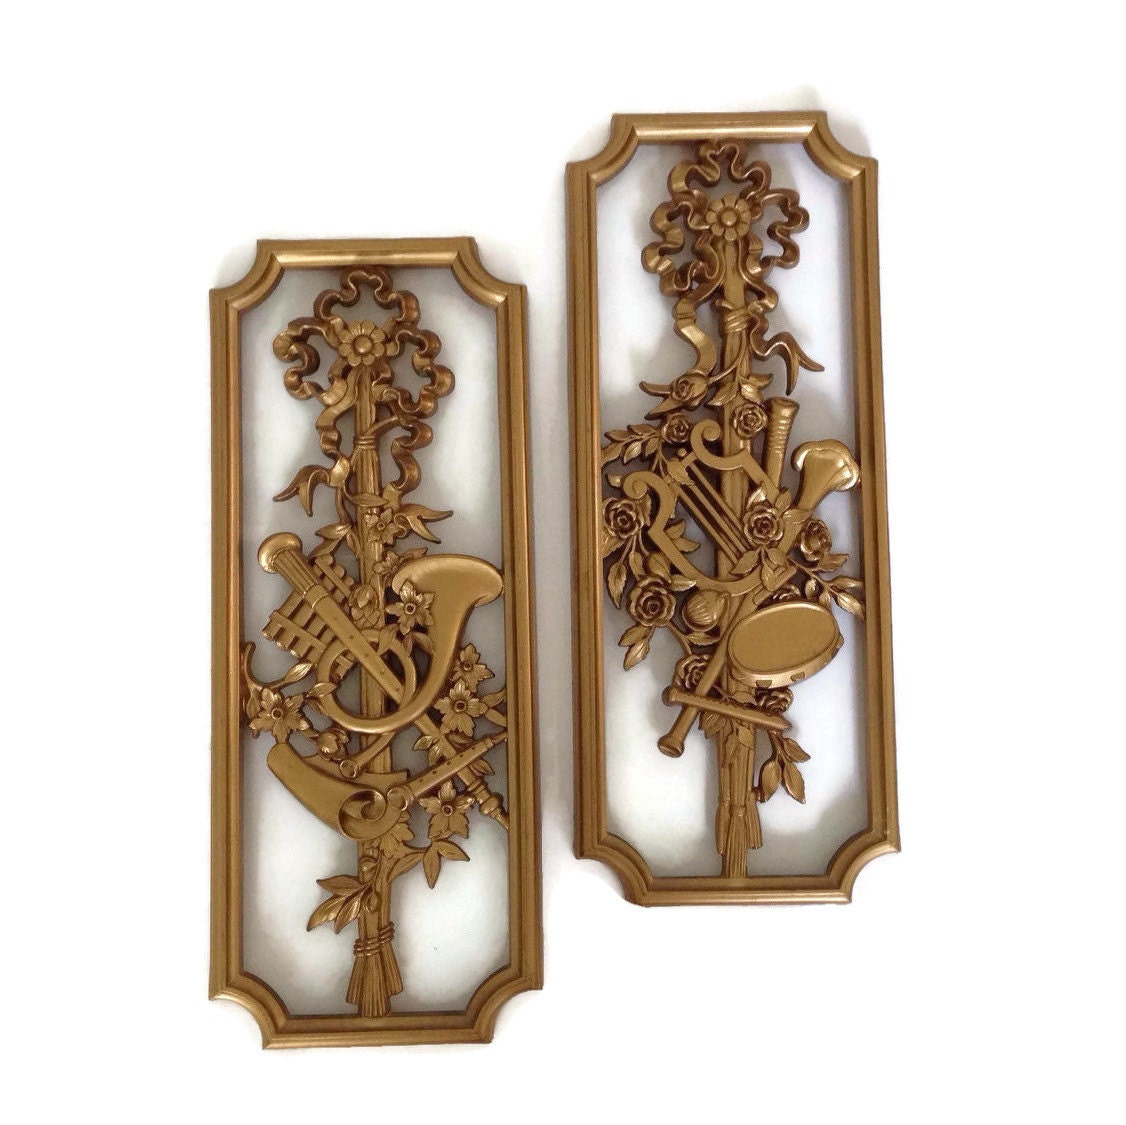 Hollywood regency homco wall decor plaques musical theme pair for Hollywood regency wall decor